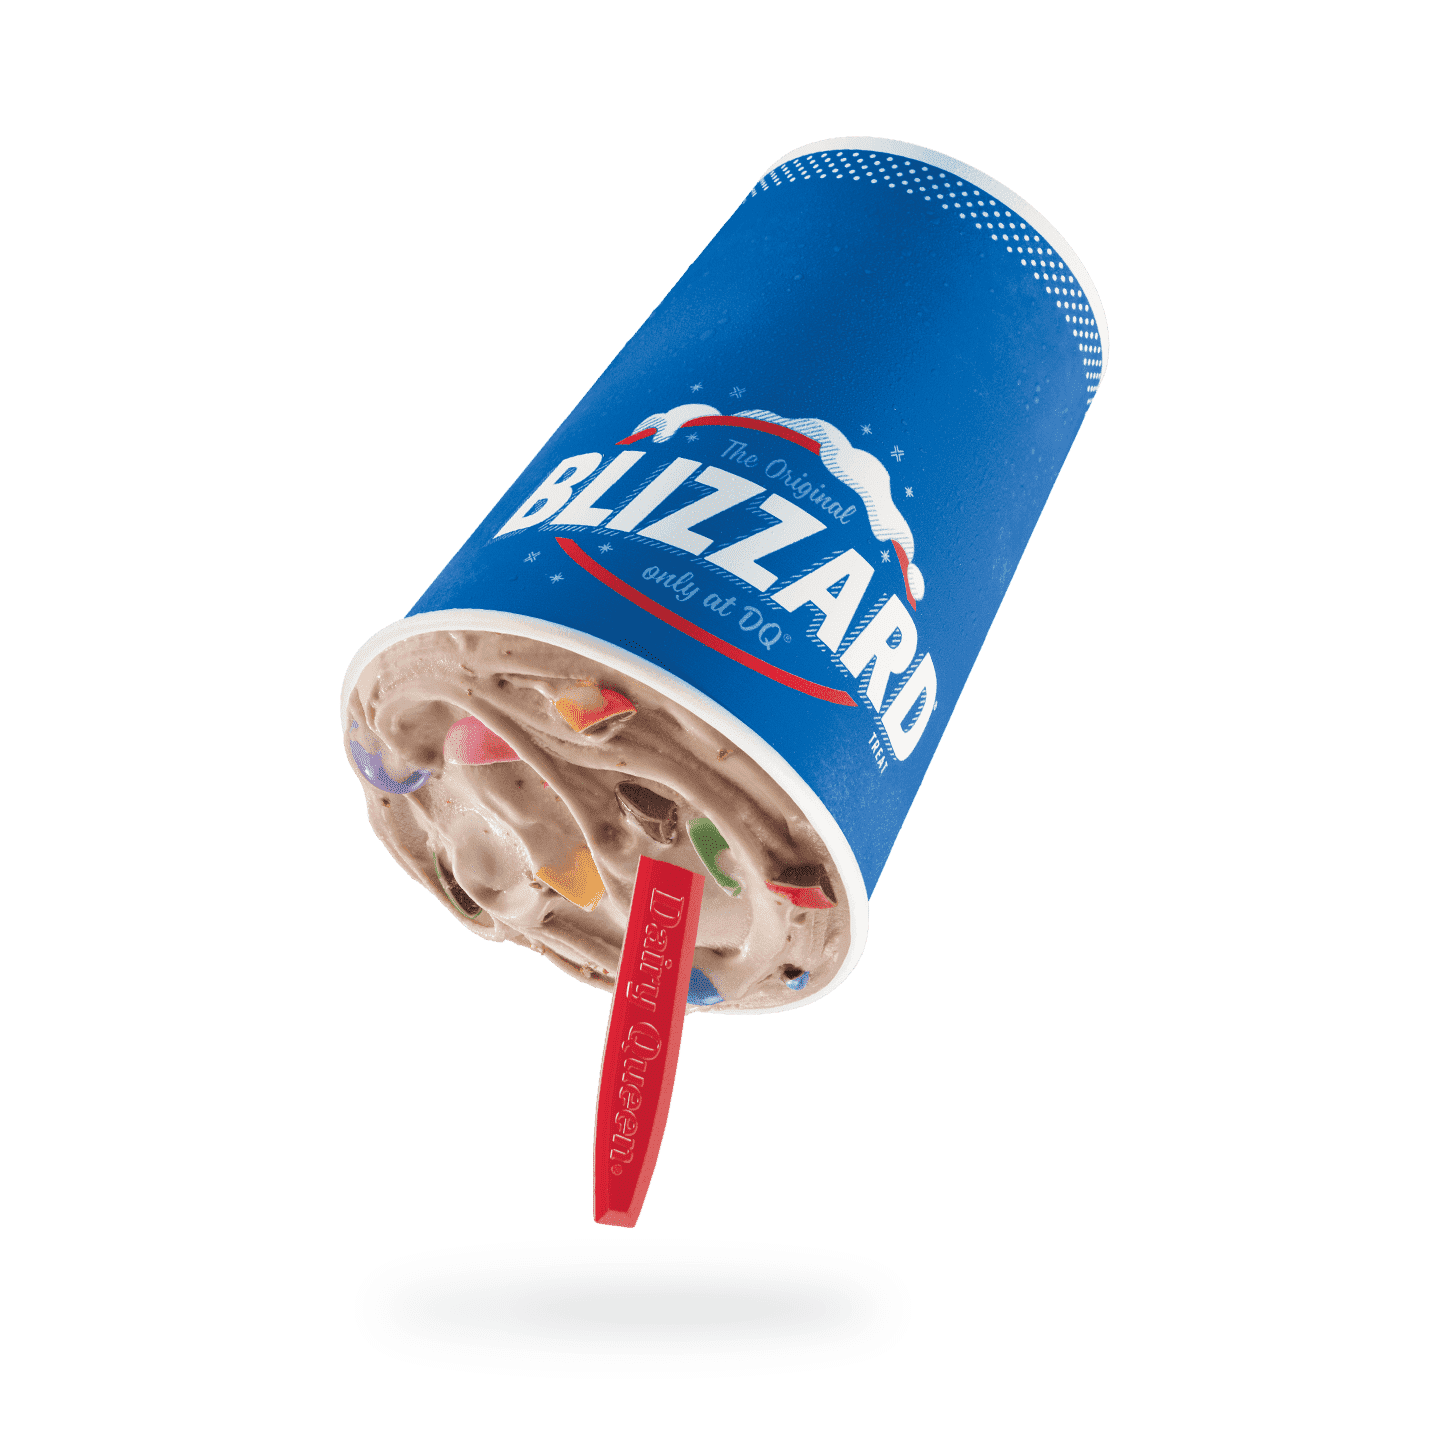 Smarties Blizzard Treat